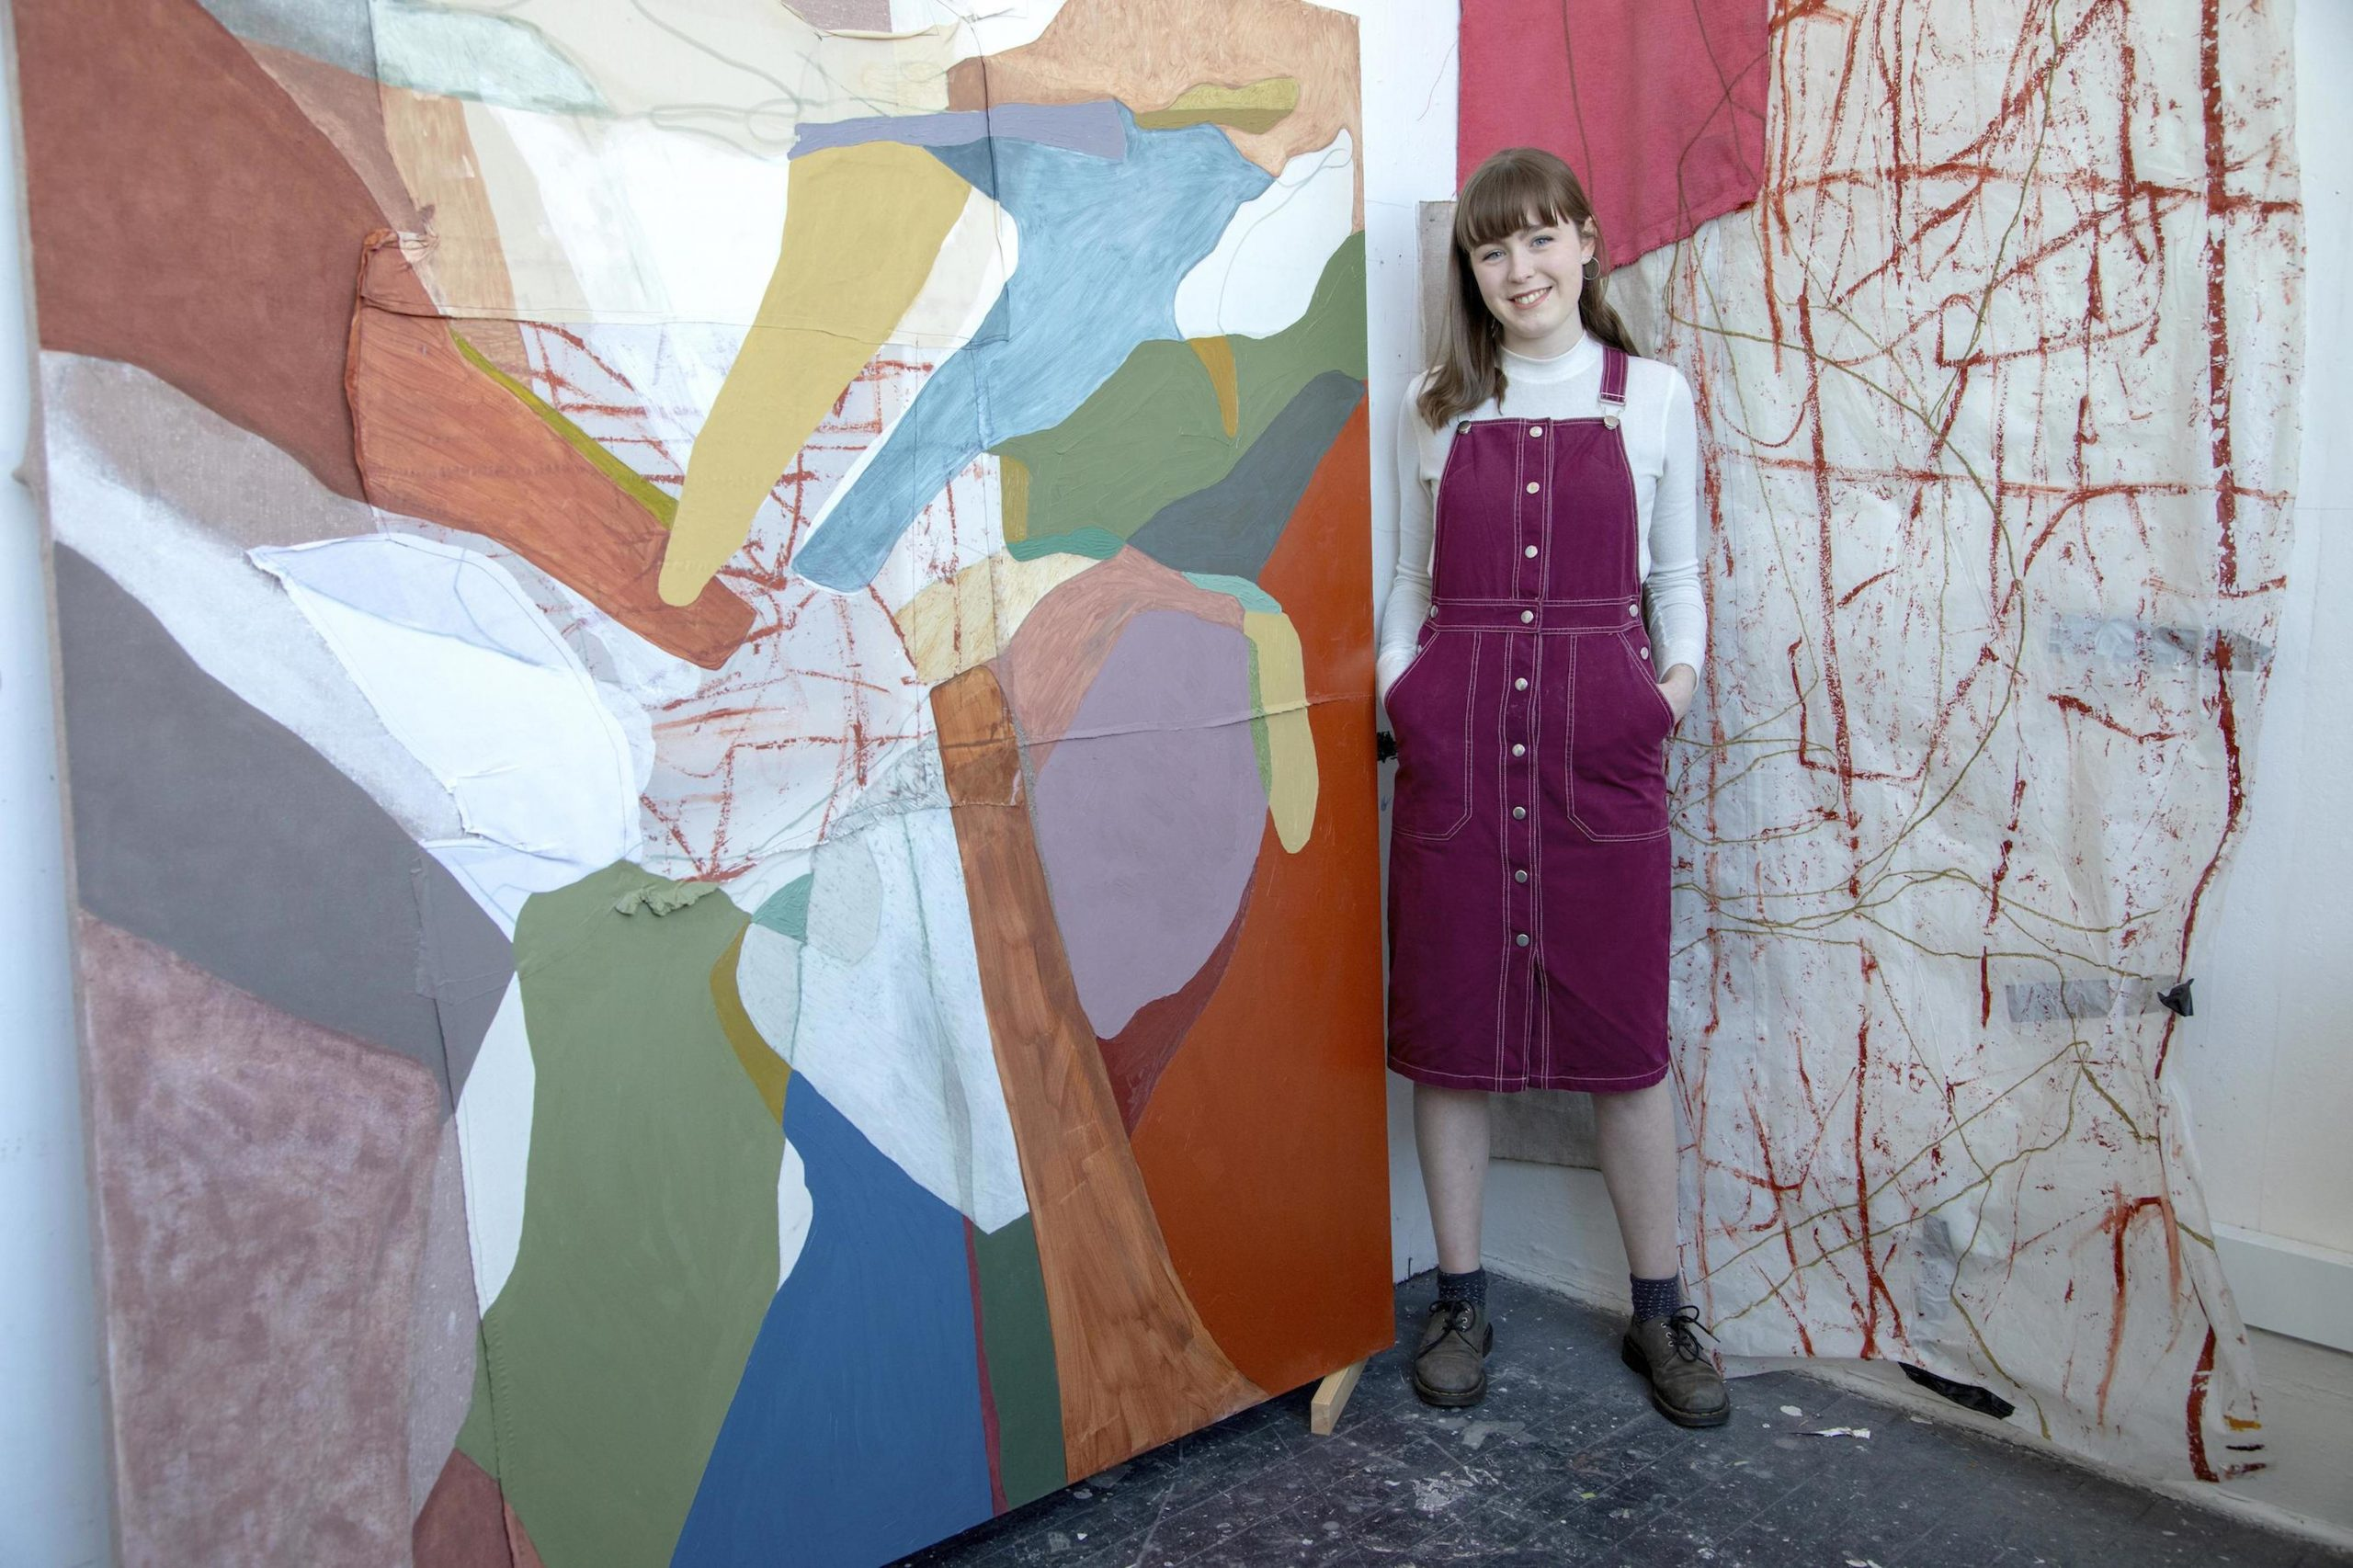 Siobhan standing next to one of her paintings.